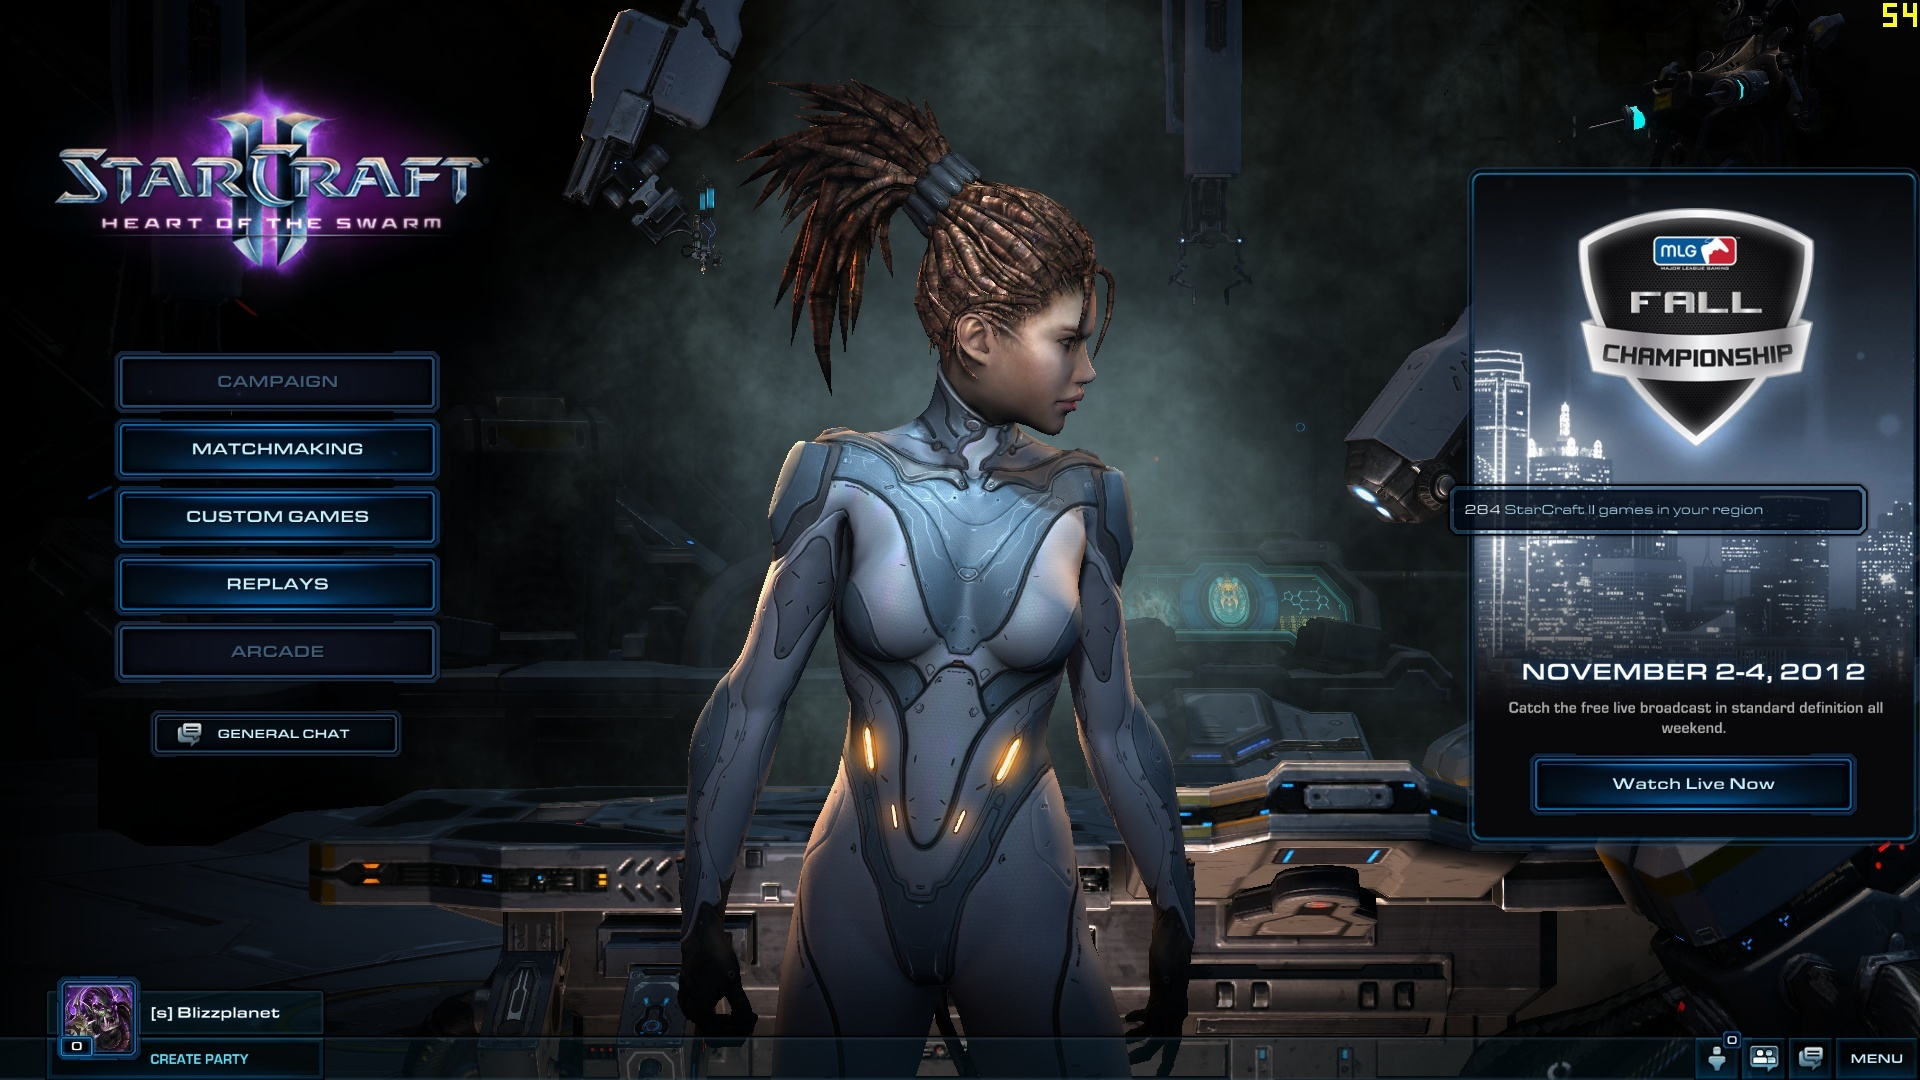 starcraft 2 heart of the swarm full movie download